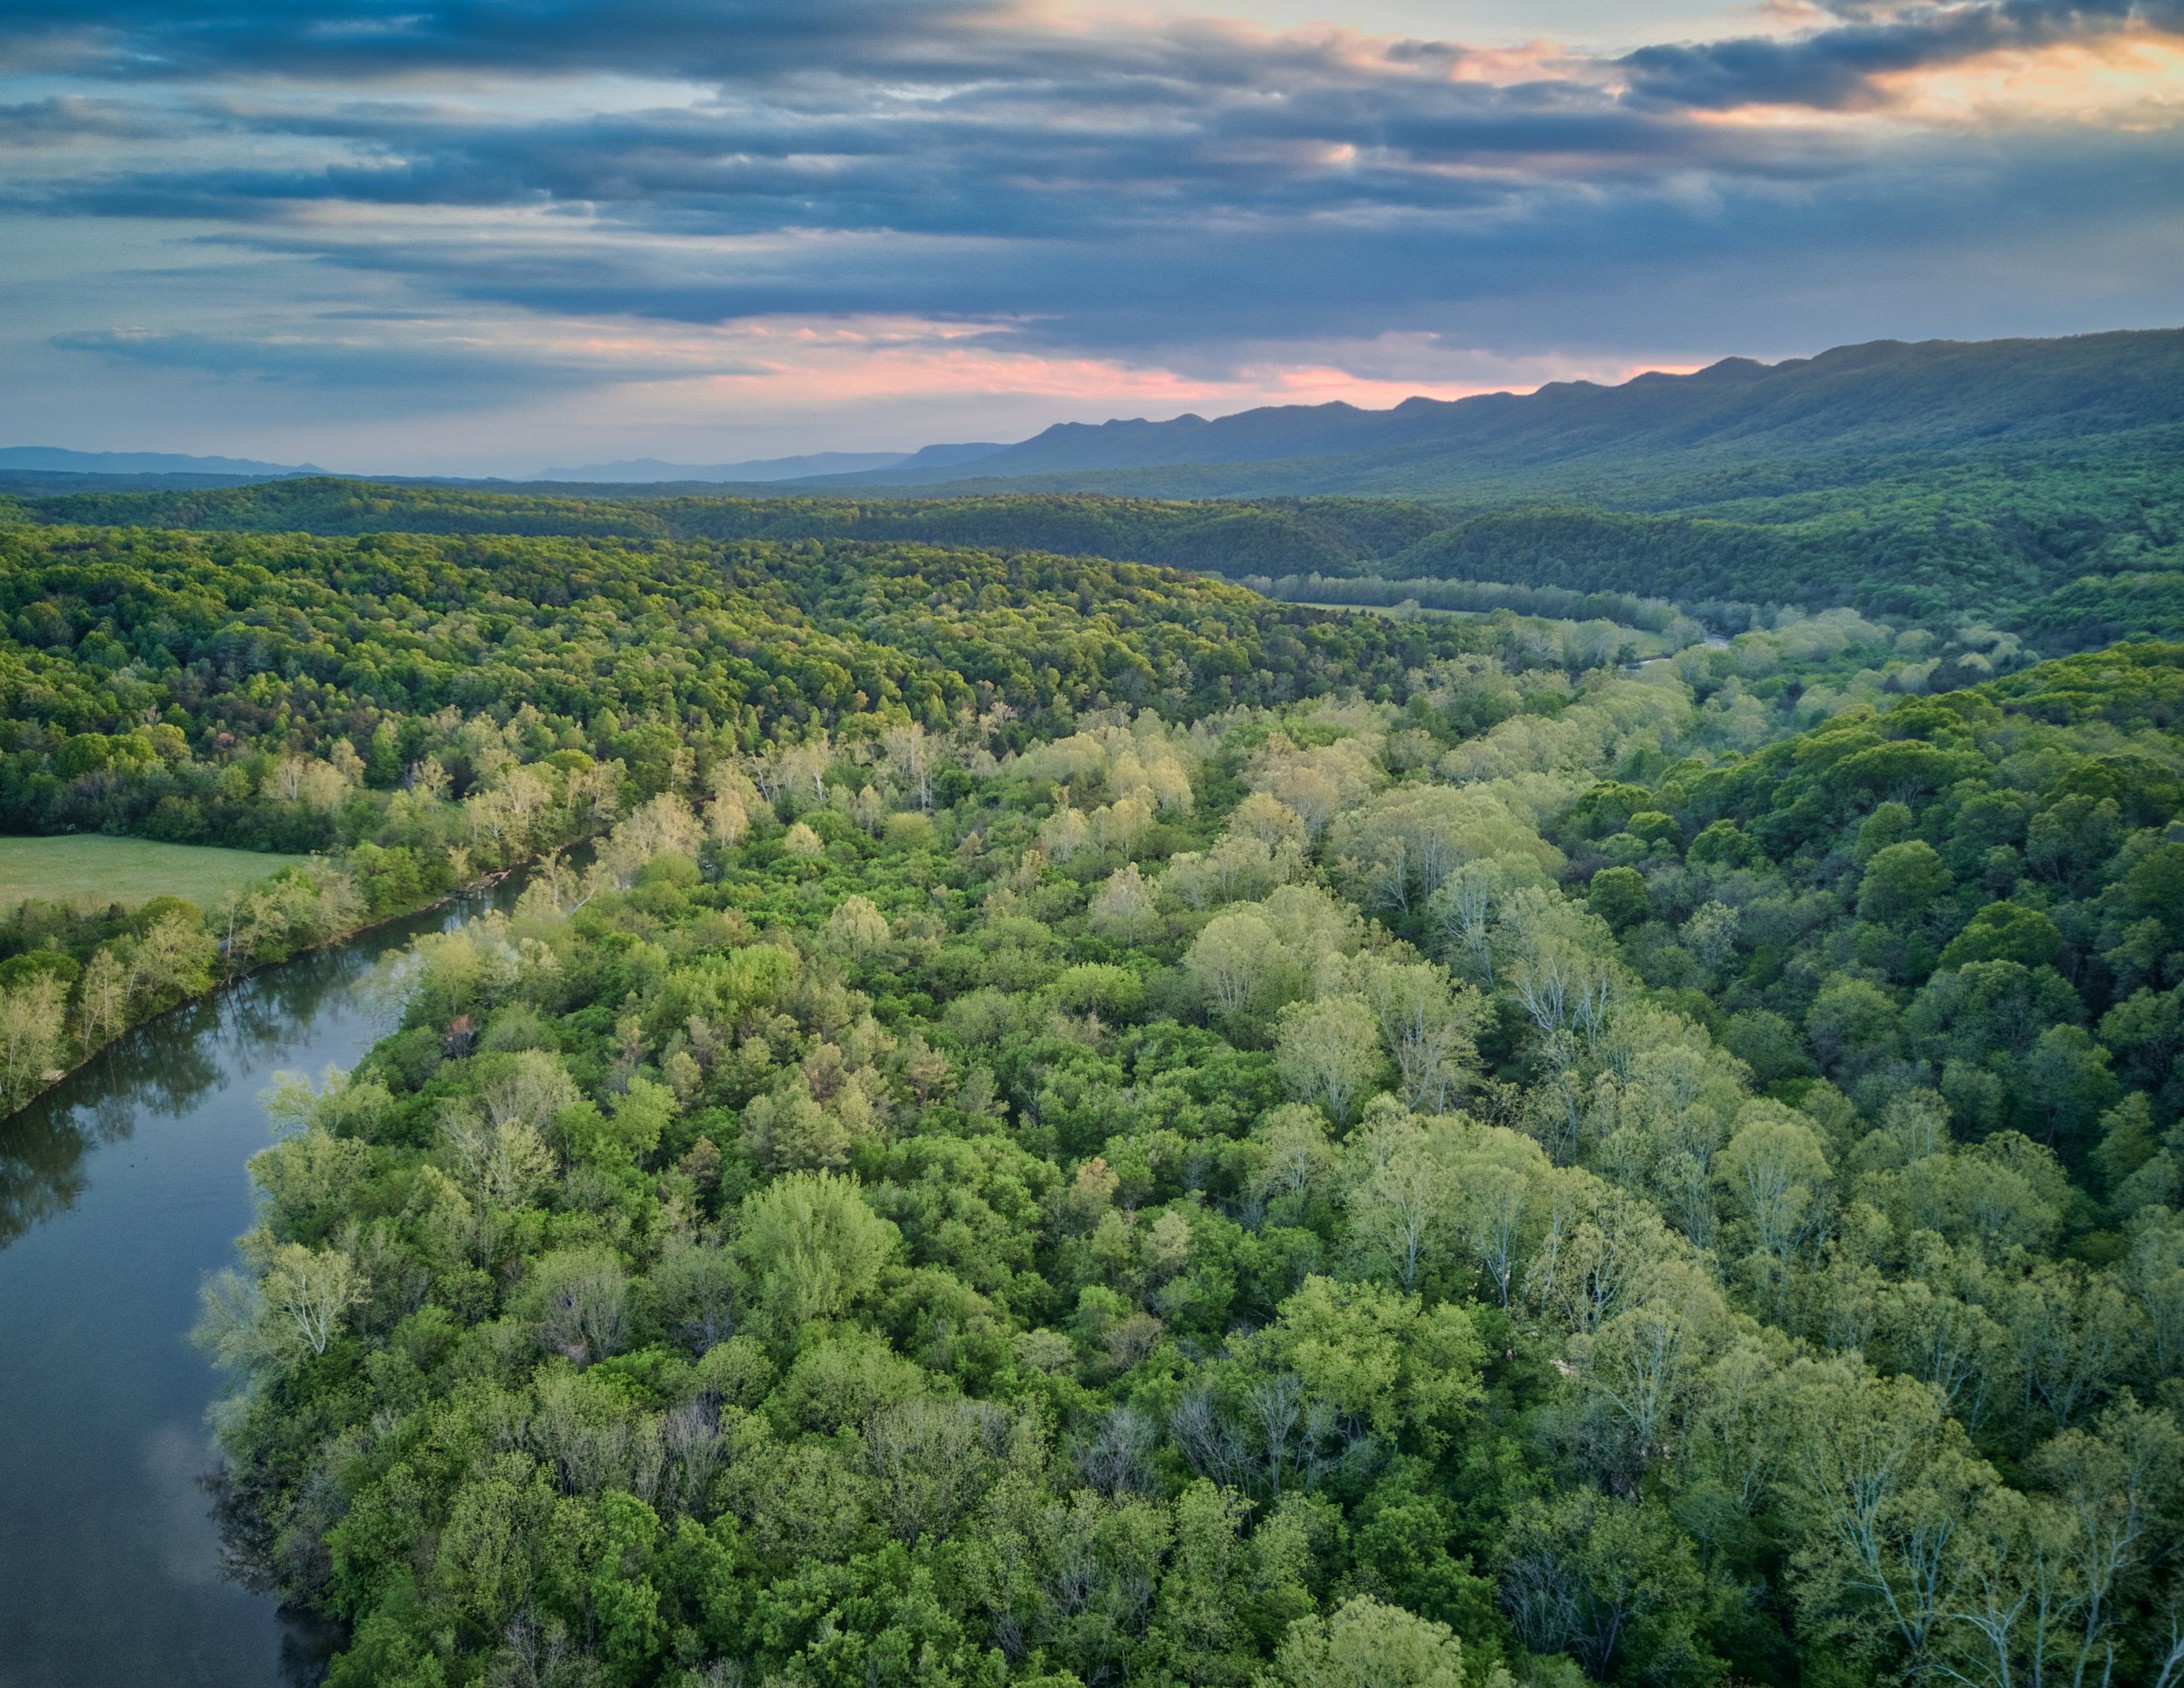 I love this shot I snagged of the Shenandoah Valley.My favorite part of an aerial image like this is the nuance in texture, from the leafy trees reflected in the still river to the touch of golden sunset.